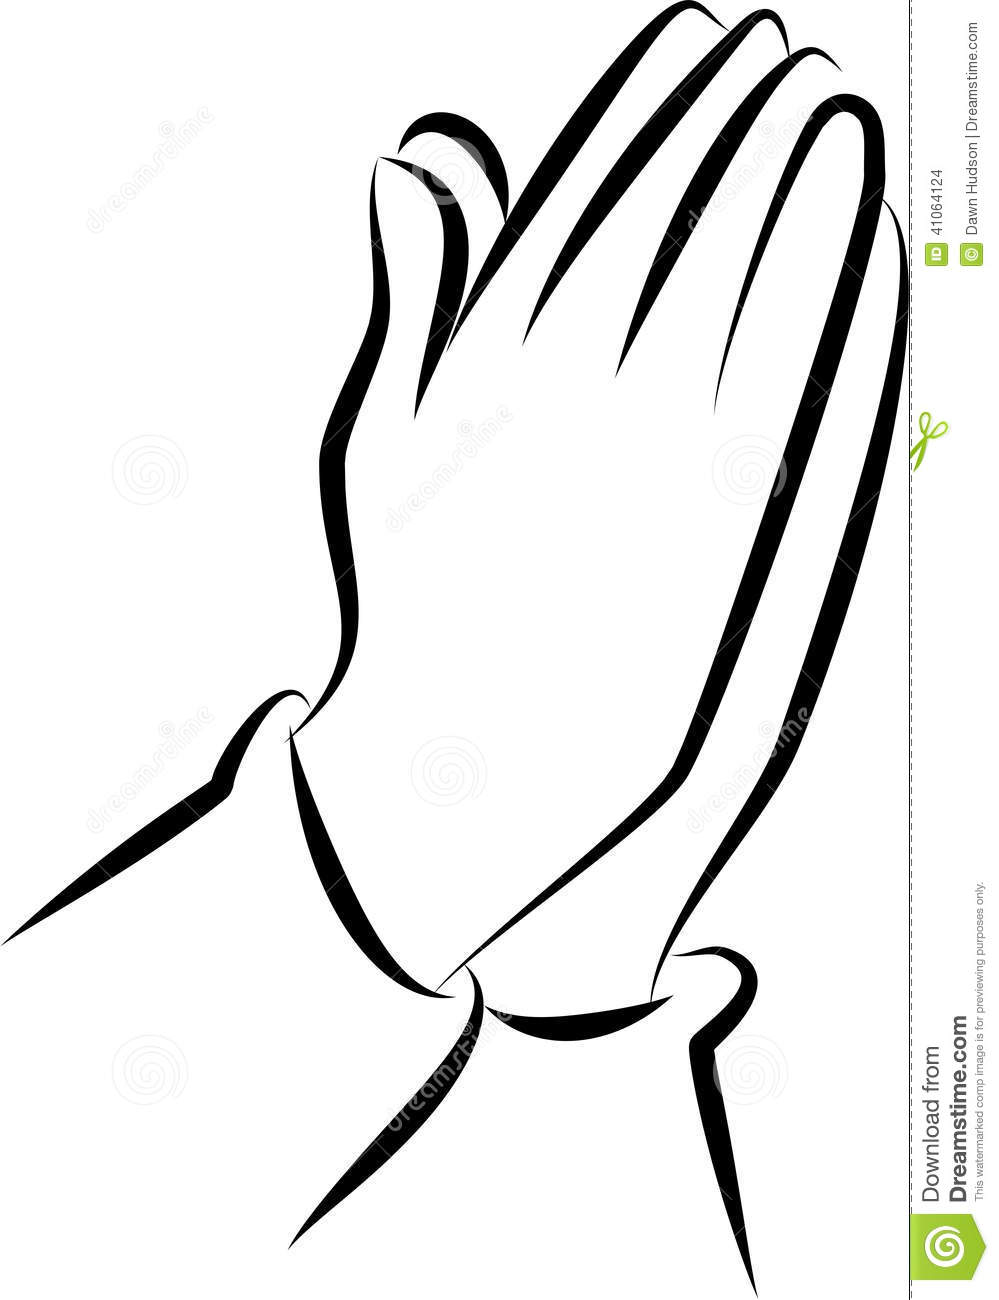 Cross And Praying Hands Clipart Black And White.